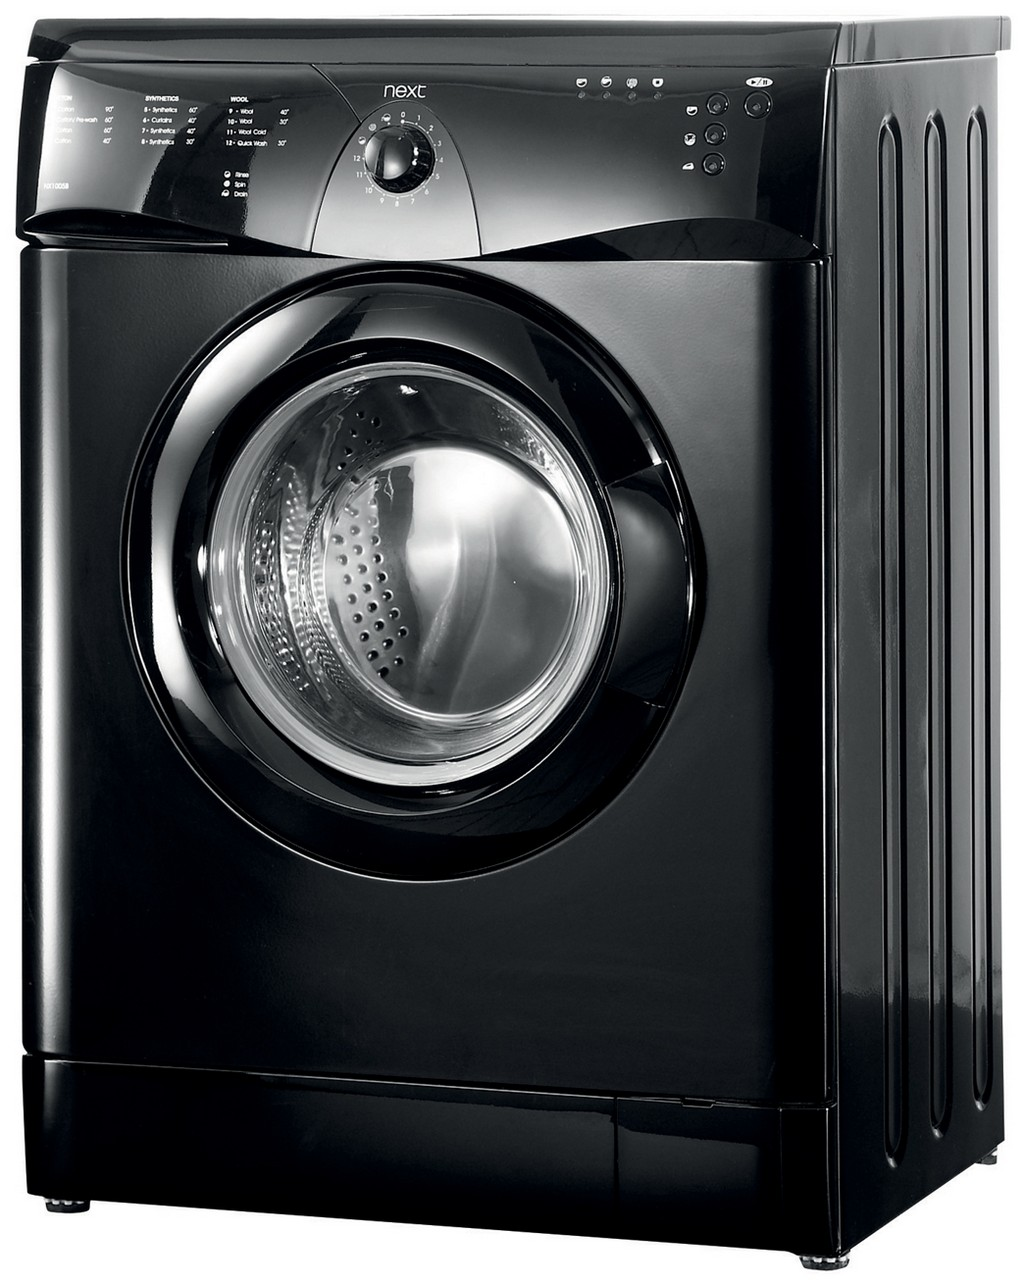 caravan washing machine, whirlpool washing machine, korean washing machine